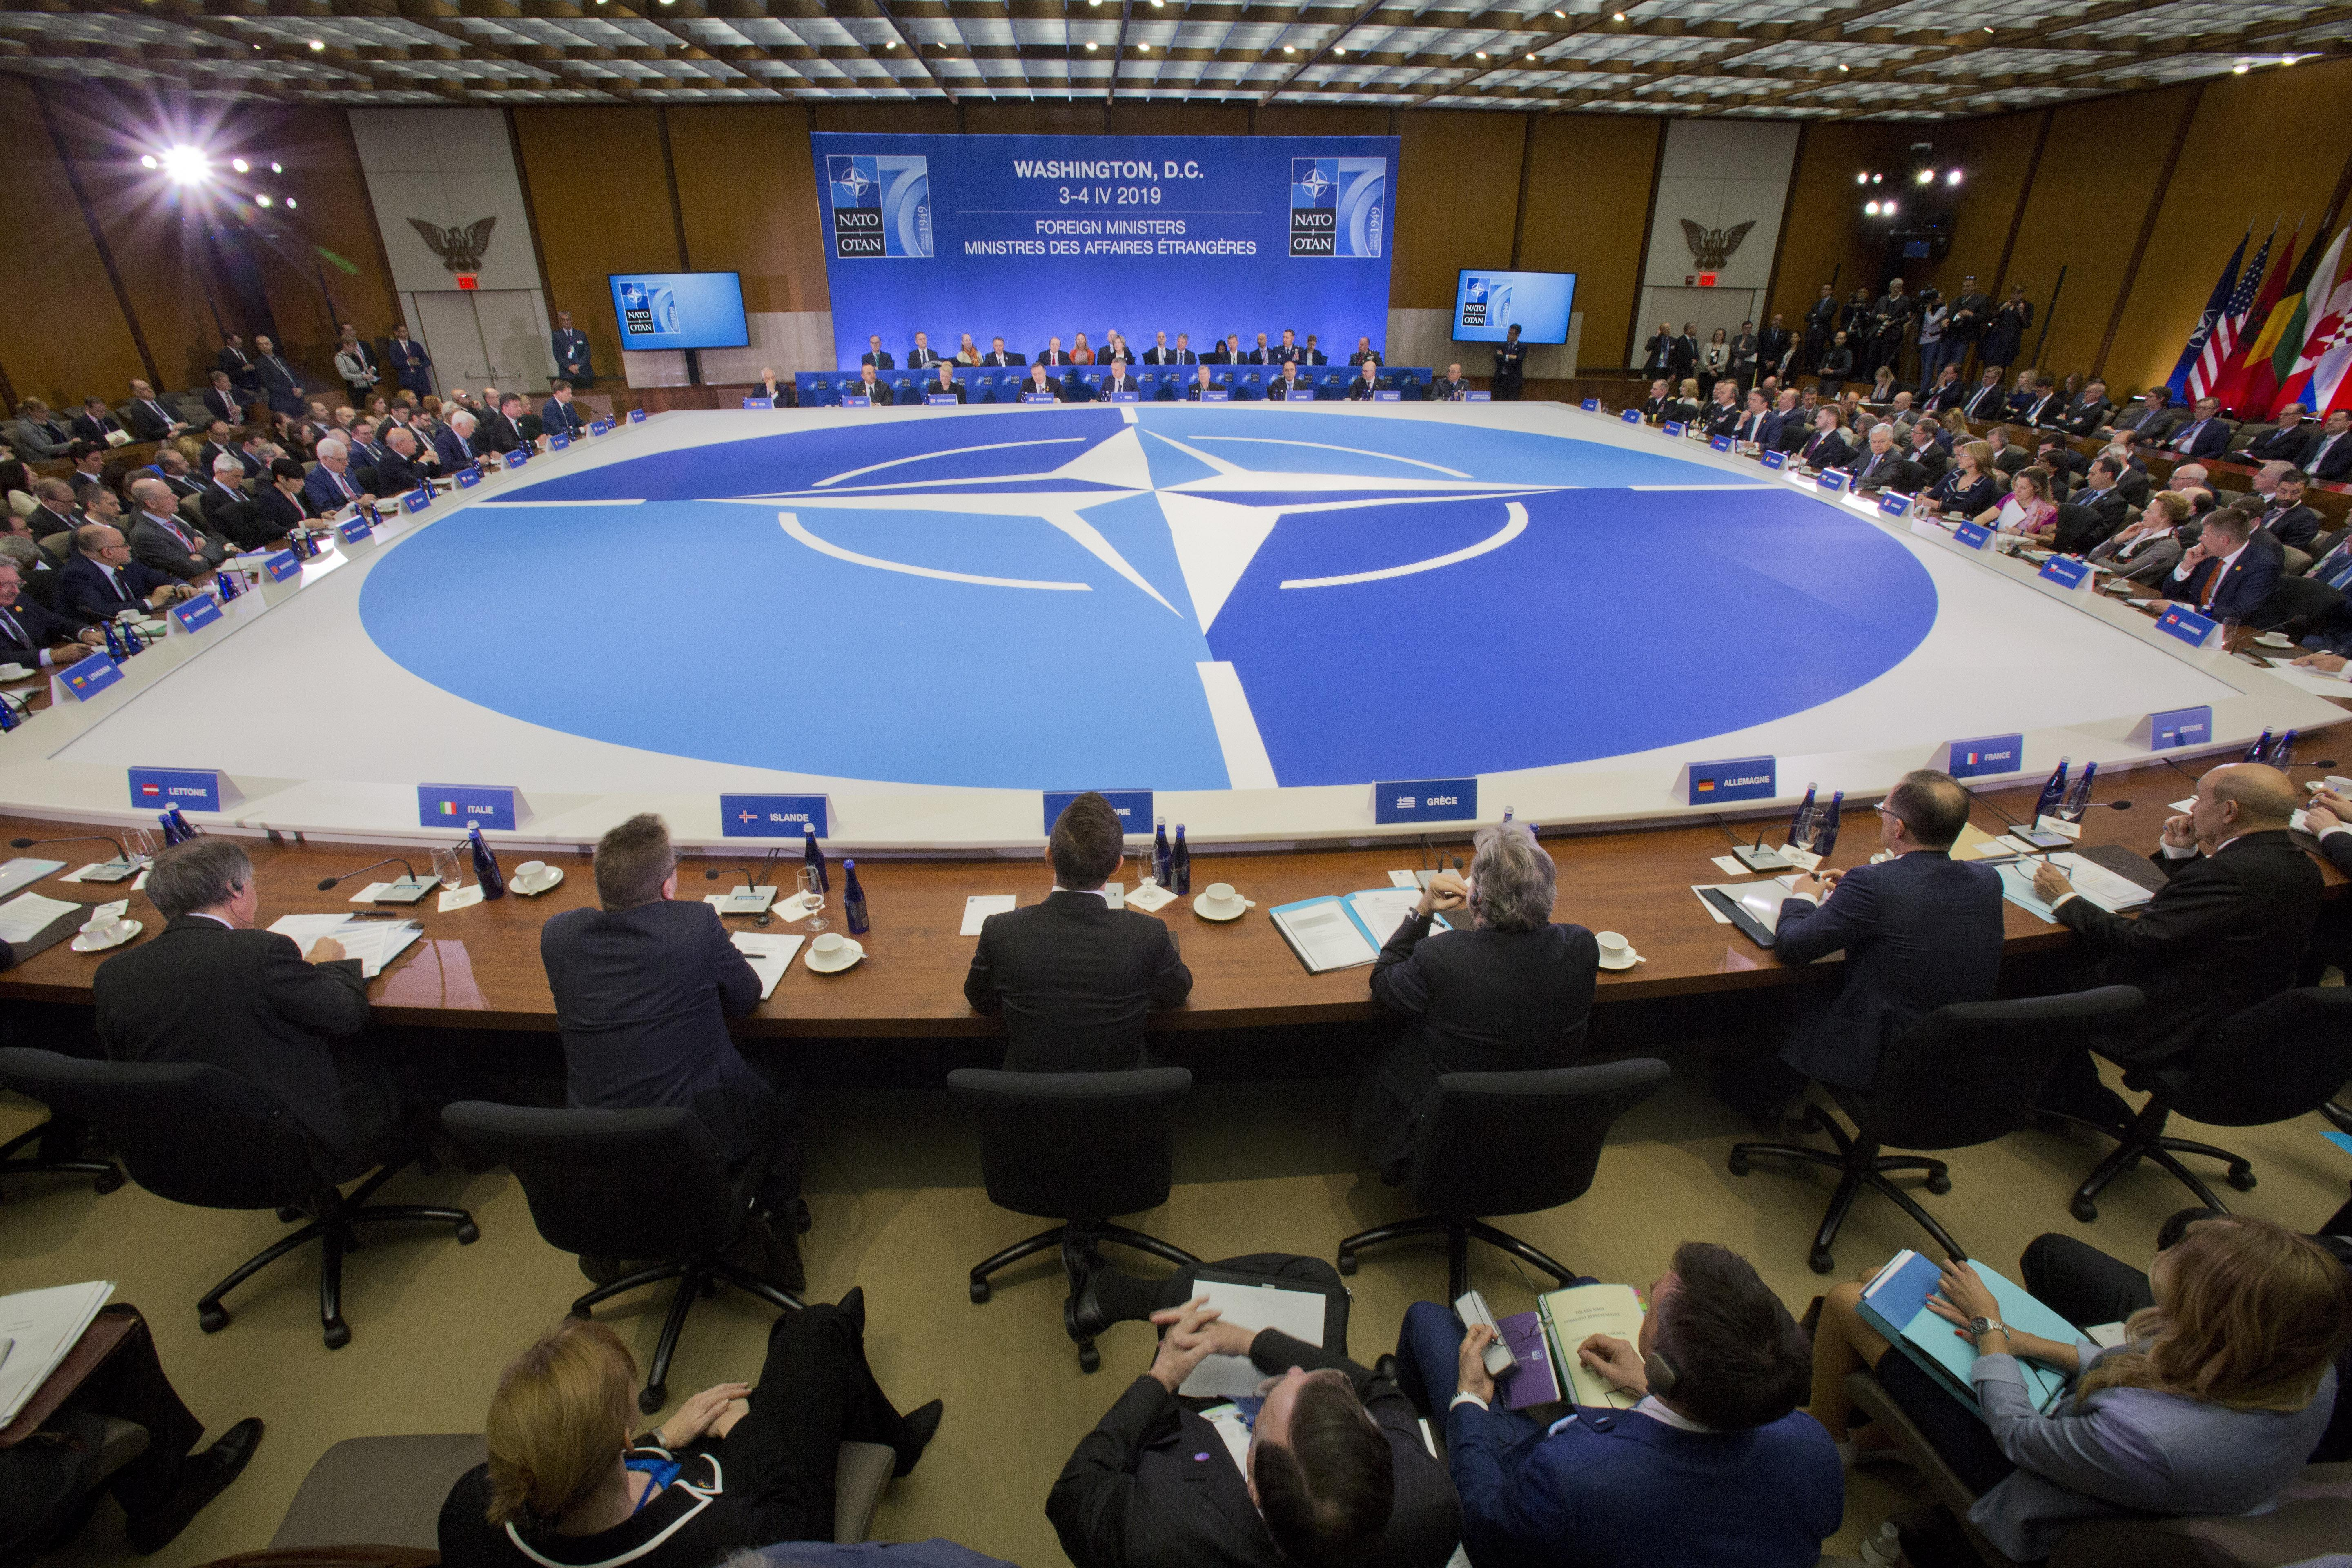 Engel, McCaul push bill allowing NATO allies to get direct U.S. loans to upgrade weapons